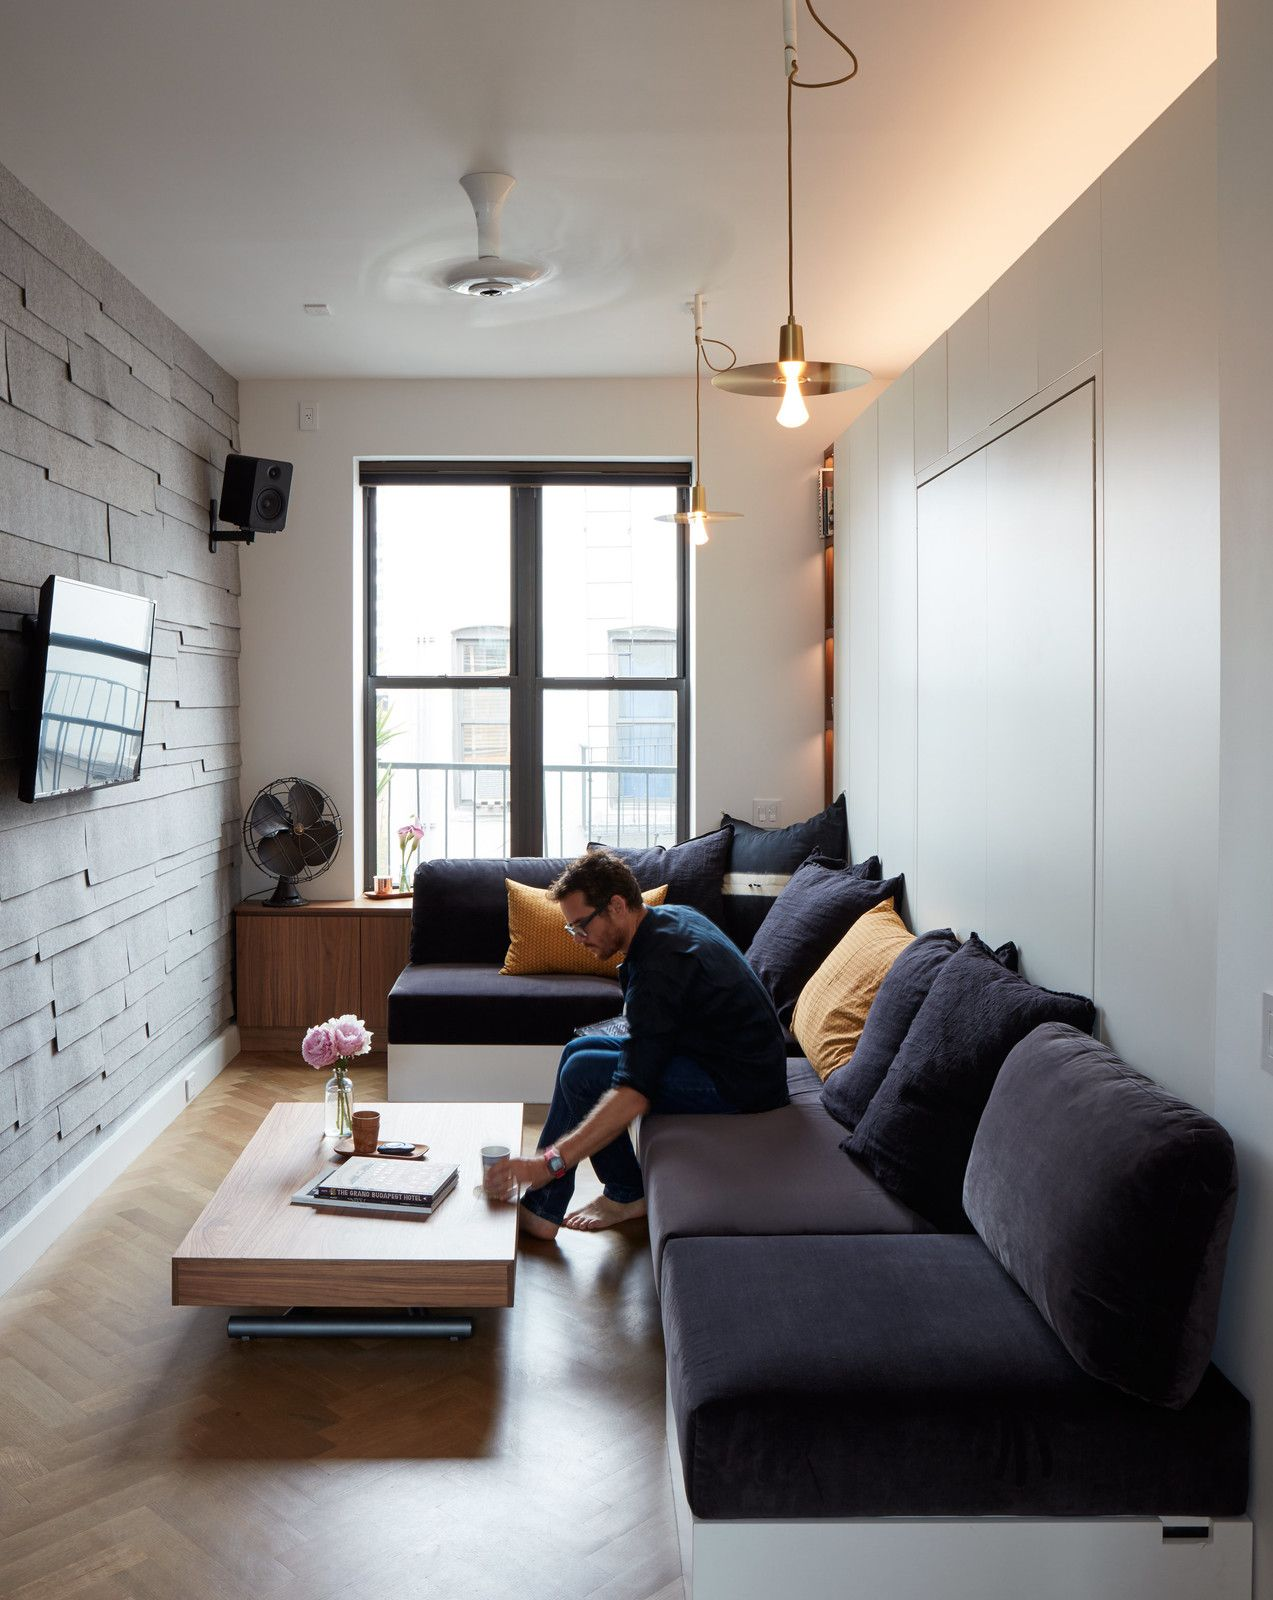 At his squarefoot apartment small space champion graham hill